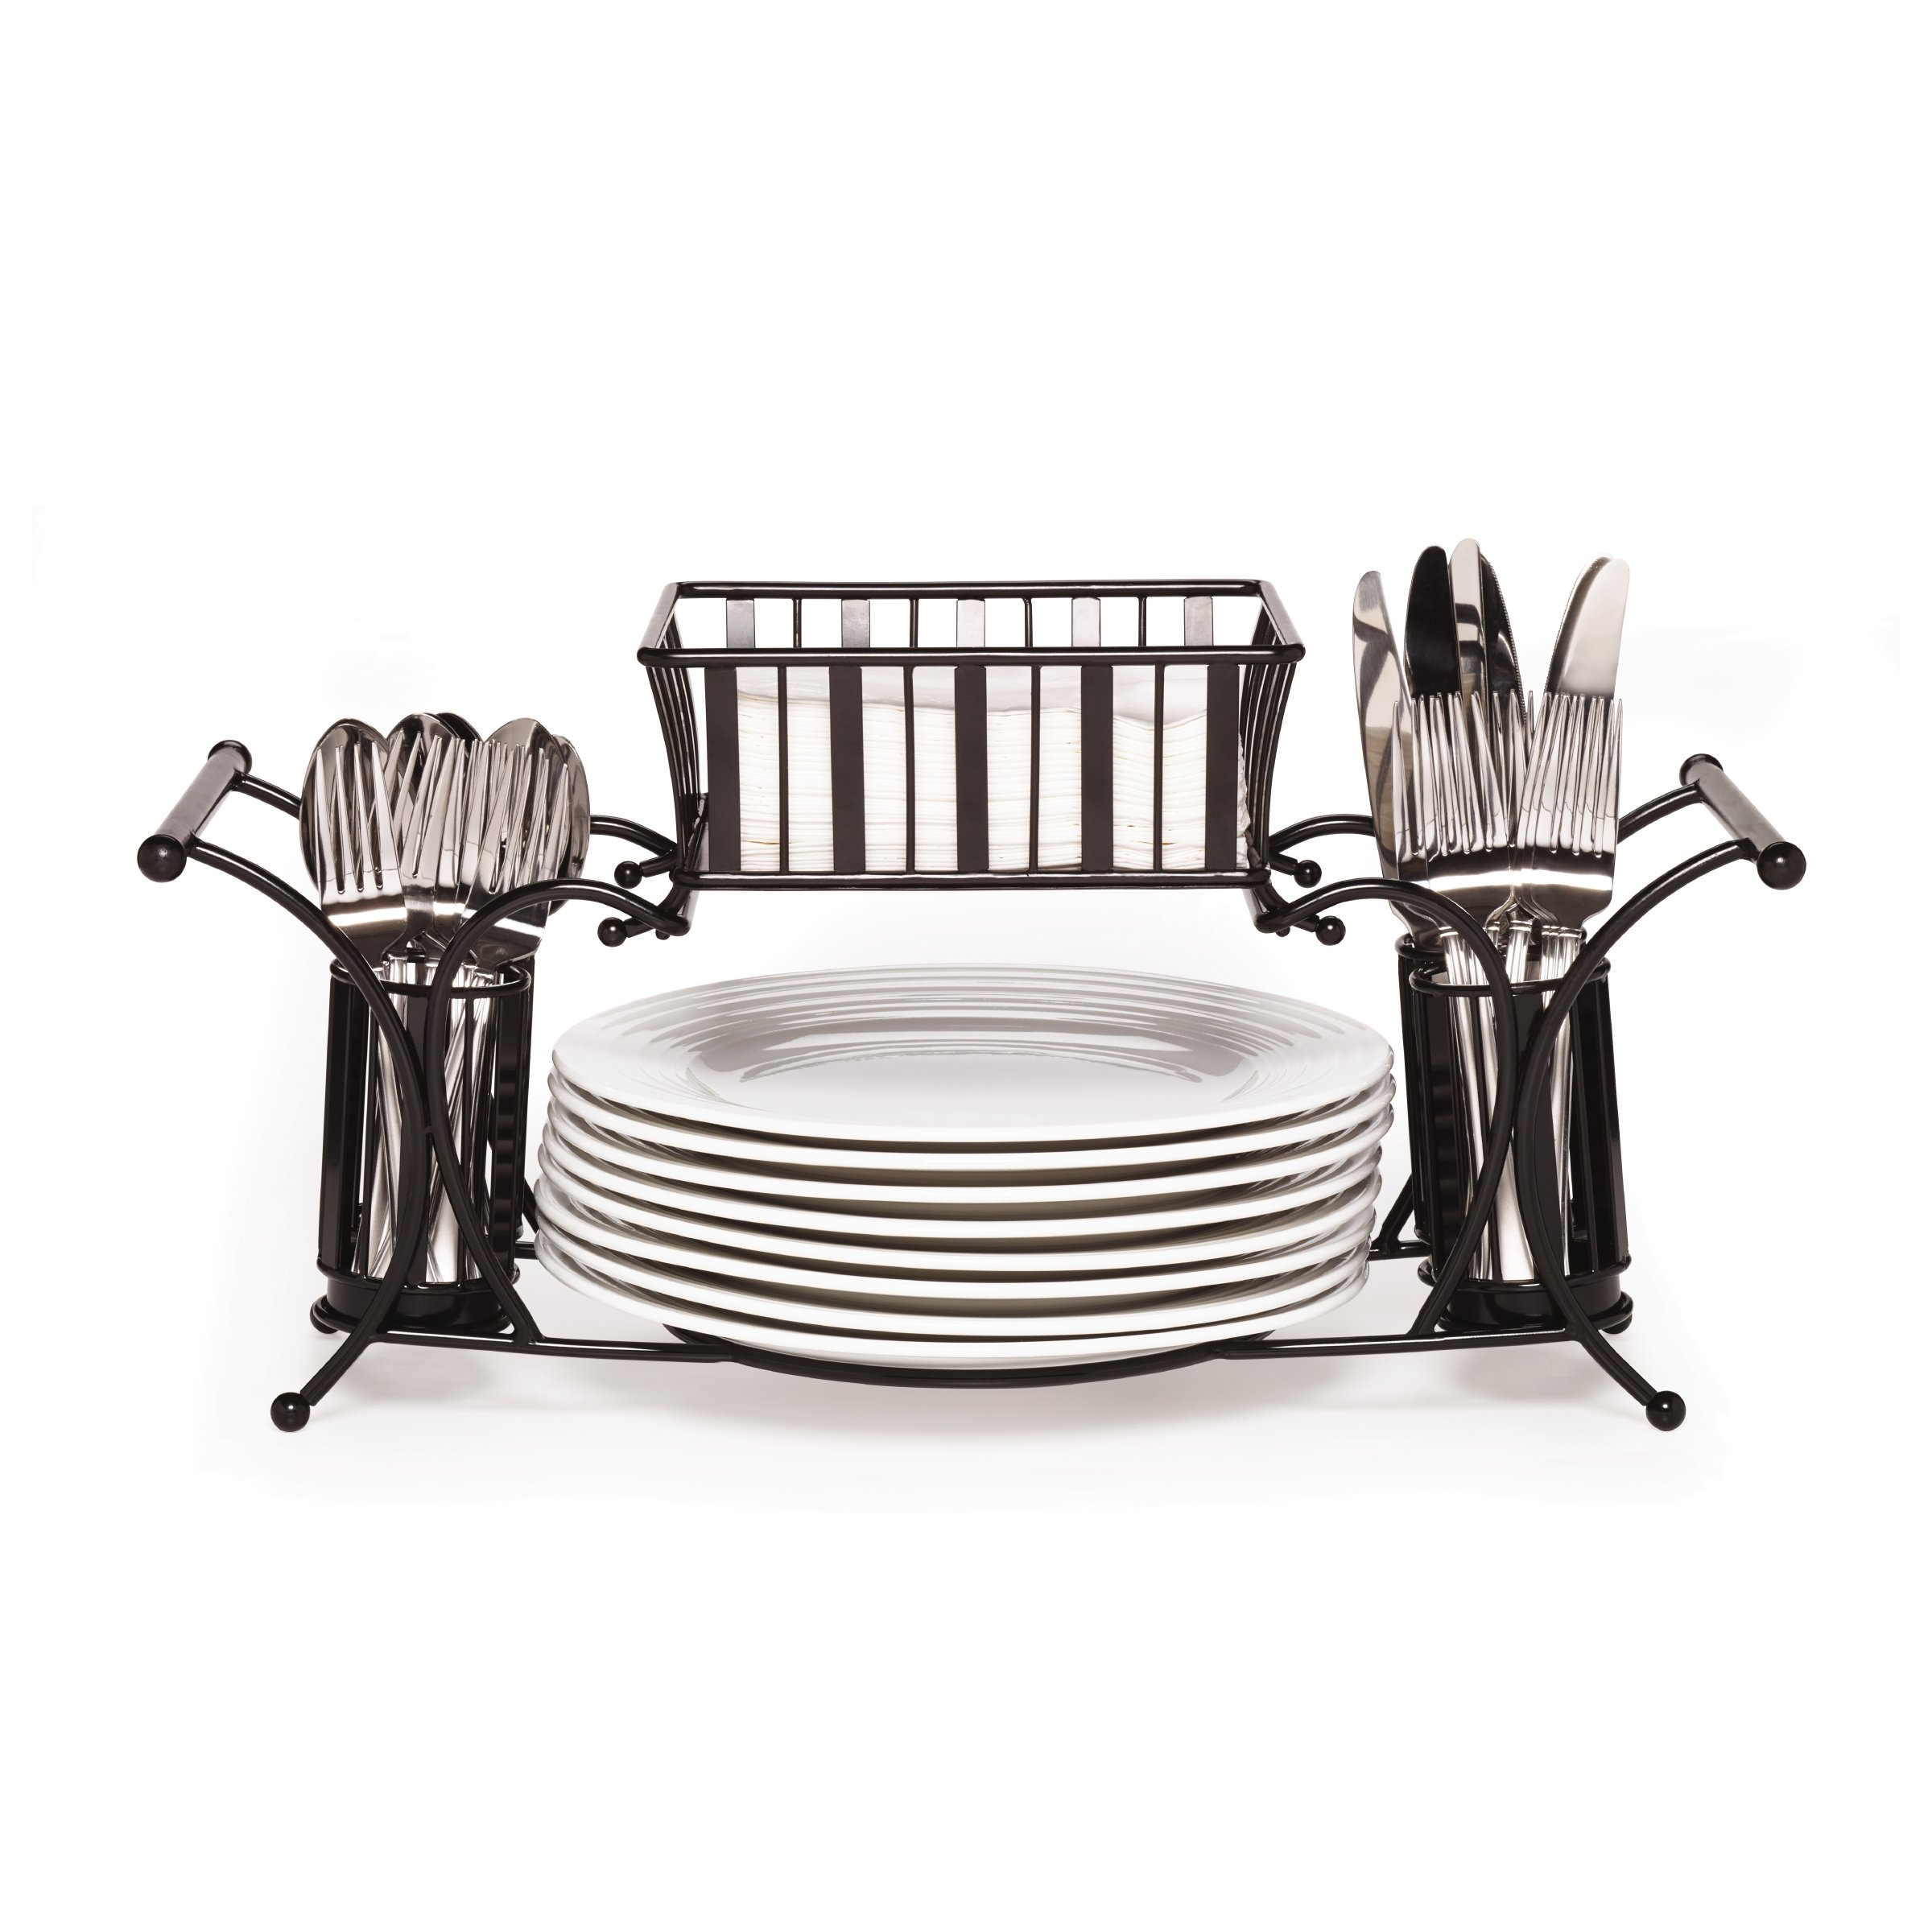 Gourmet Basics by Mikasa 5154842 Metal Hostess Flatware Napkin and Plate Tabletop Buffet Picnic Caddy, Band and Stripe by Gourmet Basics by Mikasa